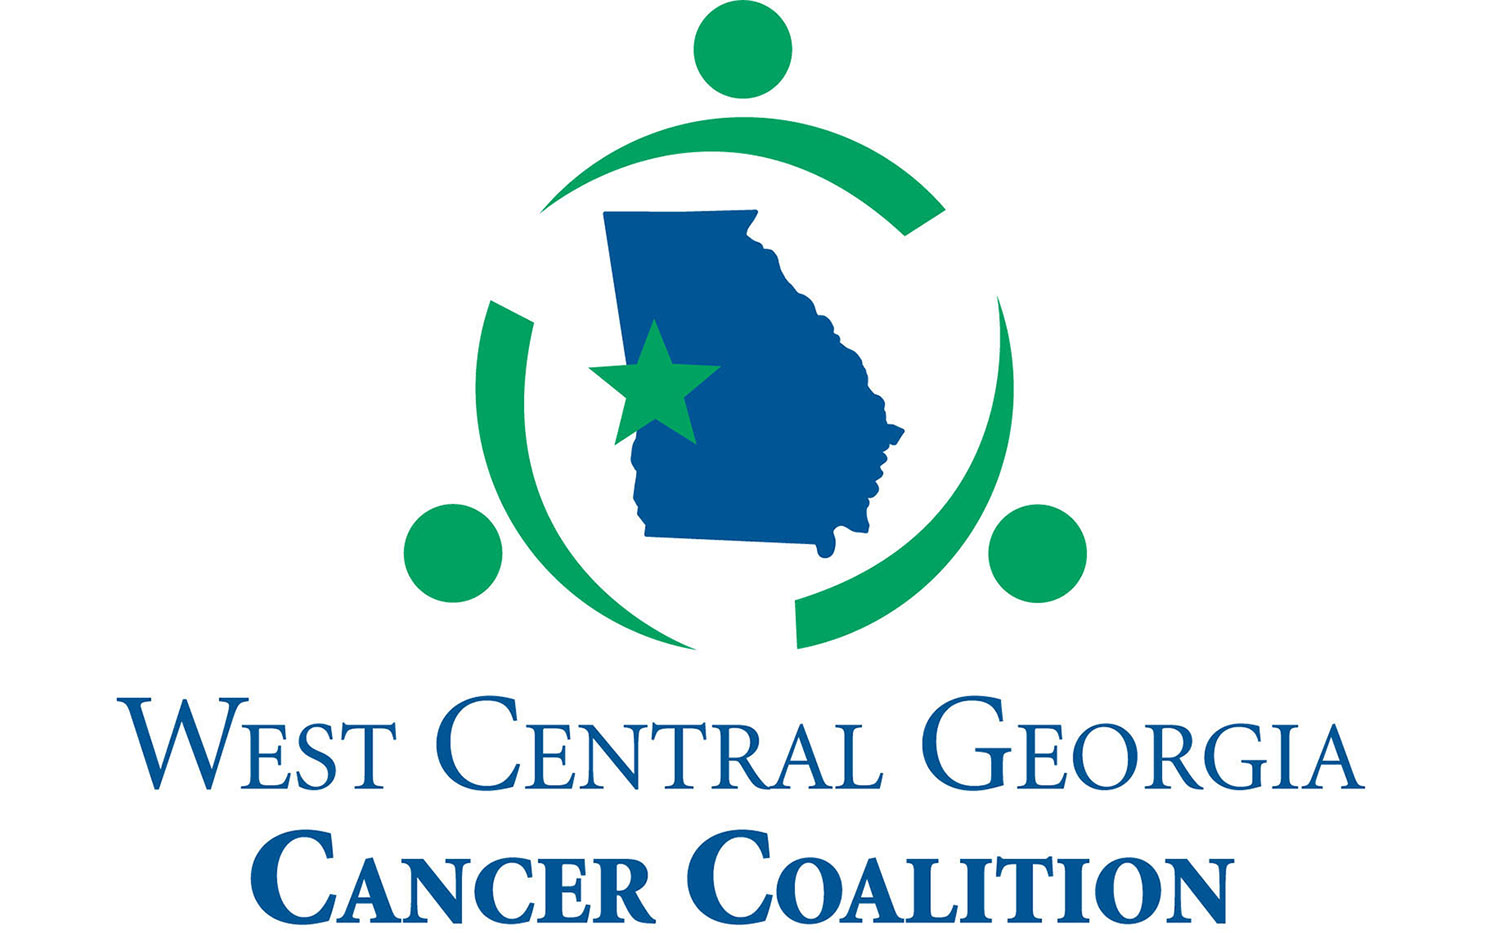 West Central Georgia Cancer Coalition, Columbus